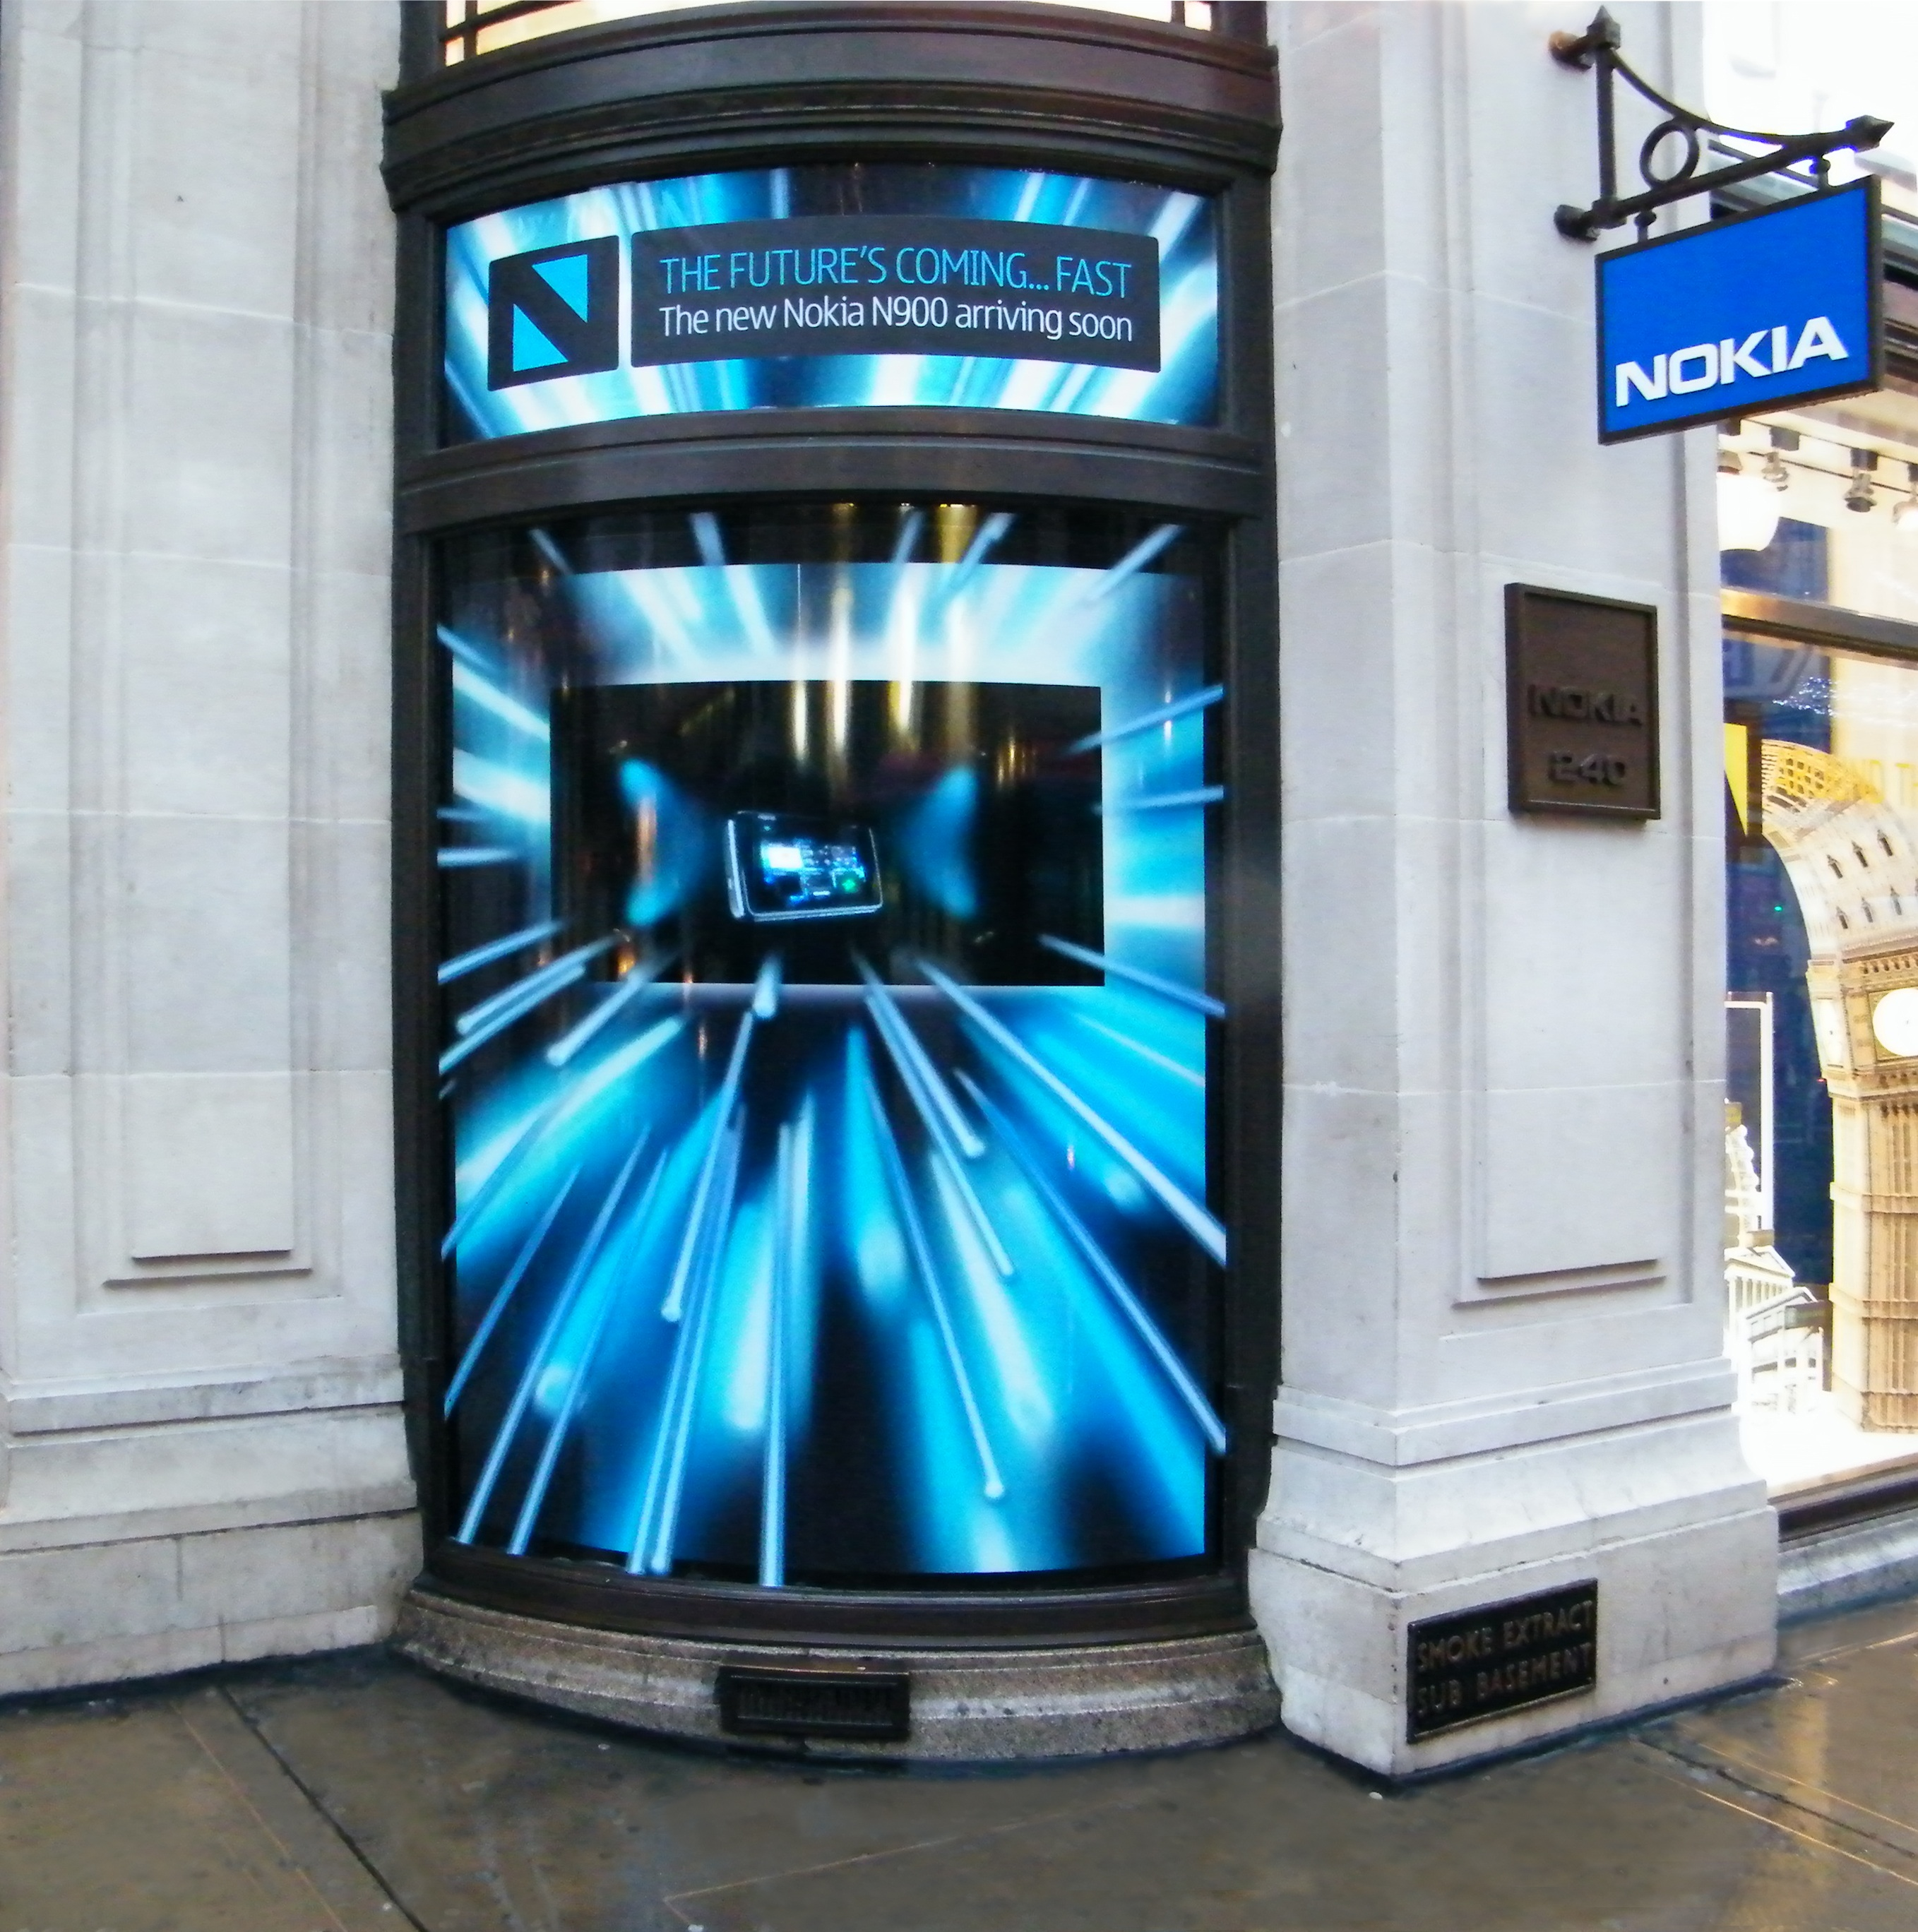 3D Holographic Window Displays for Nokia